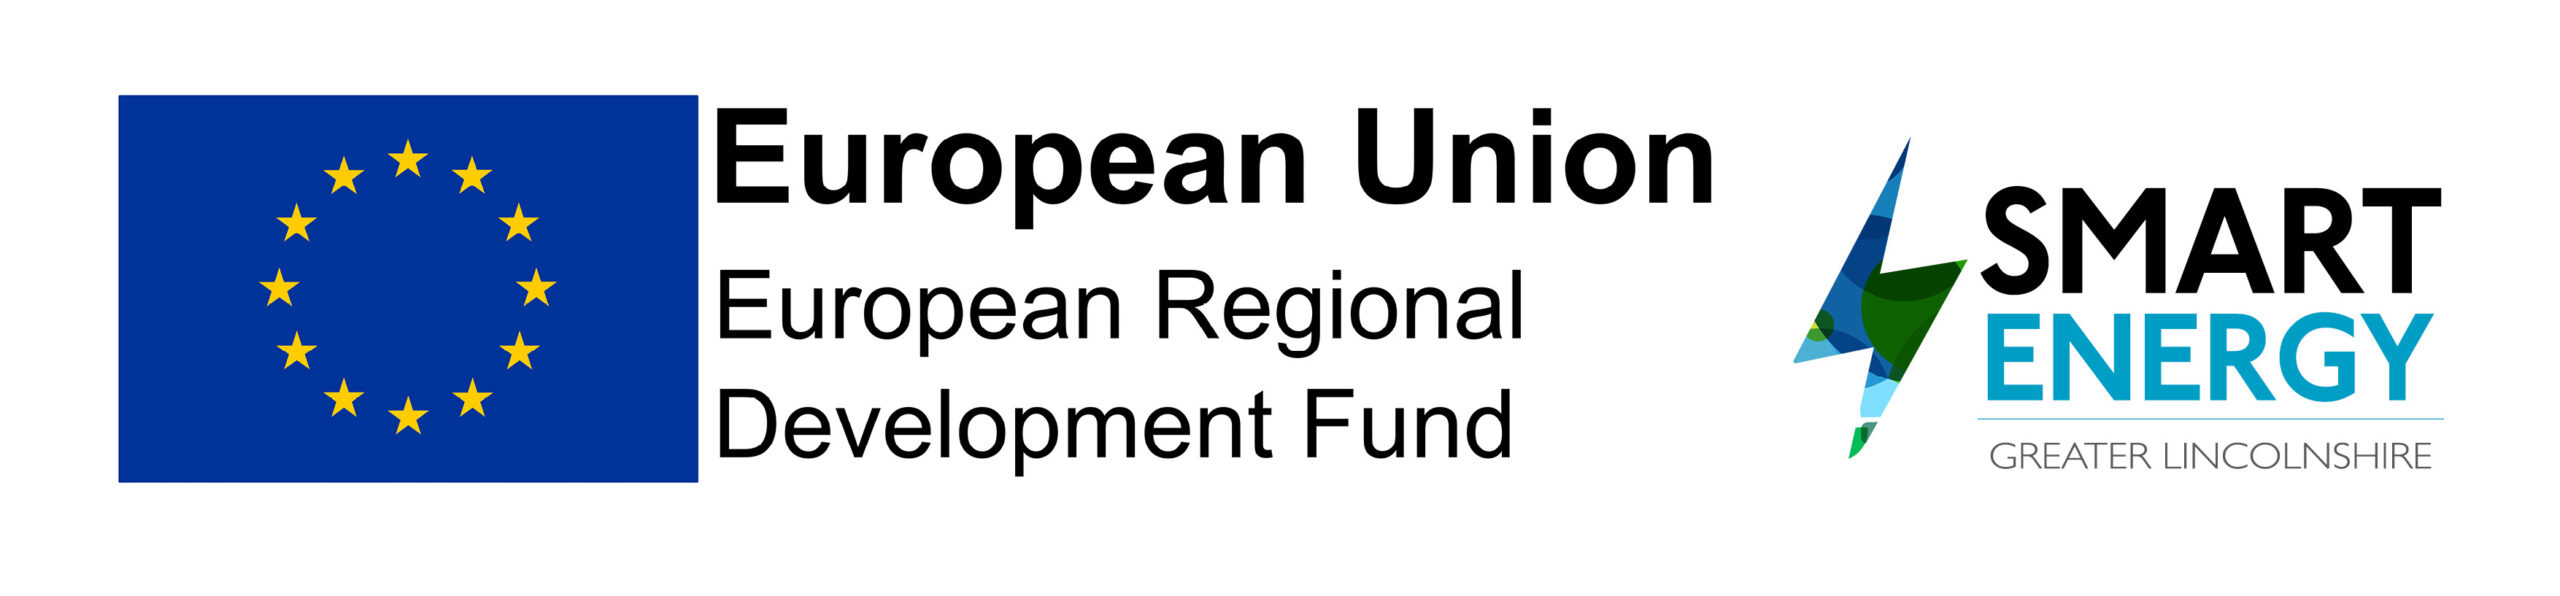 Smart Energy & ERDF Grant Award